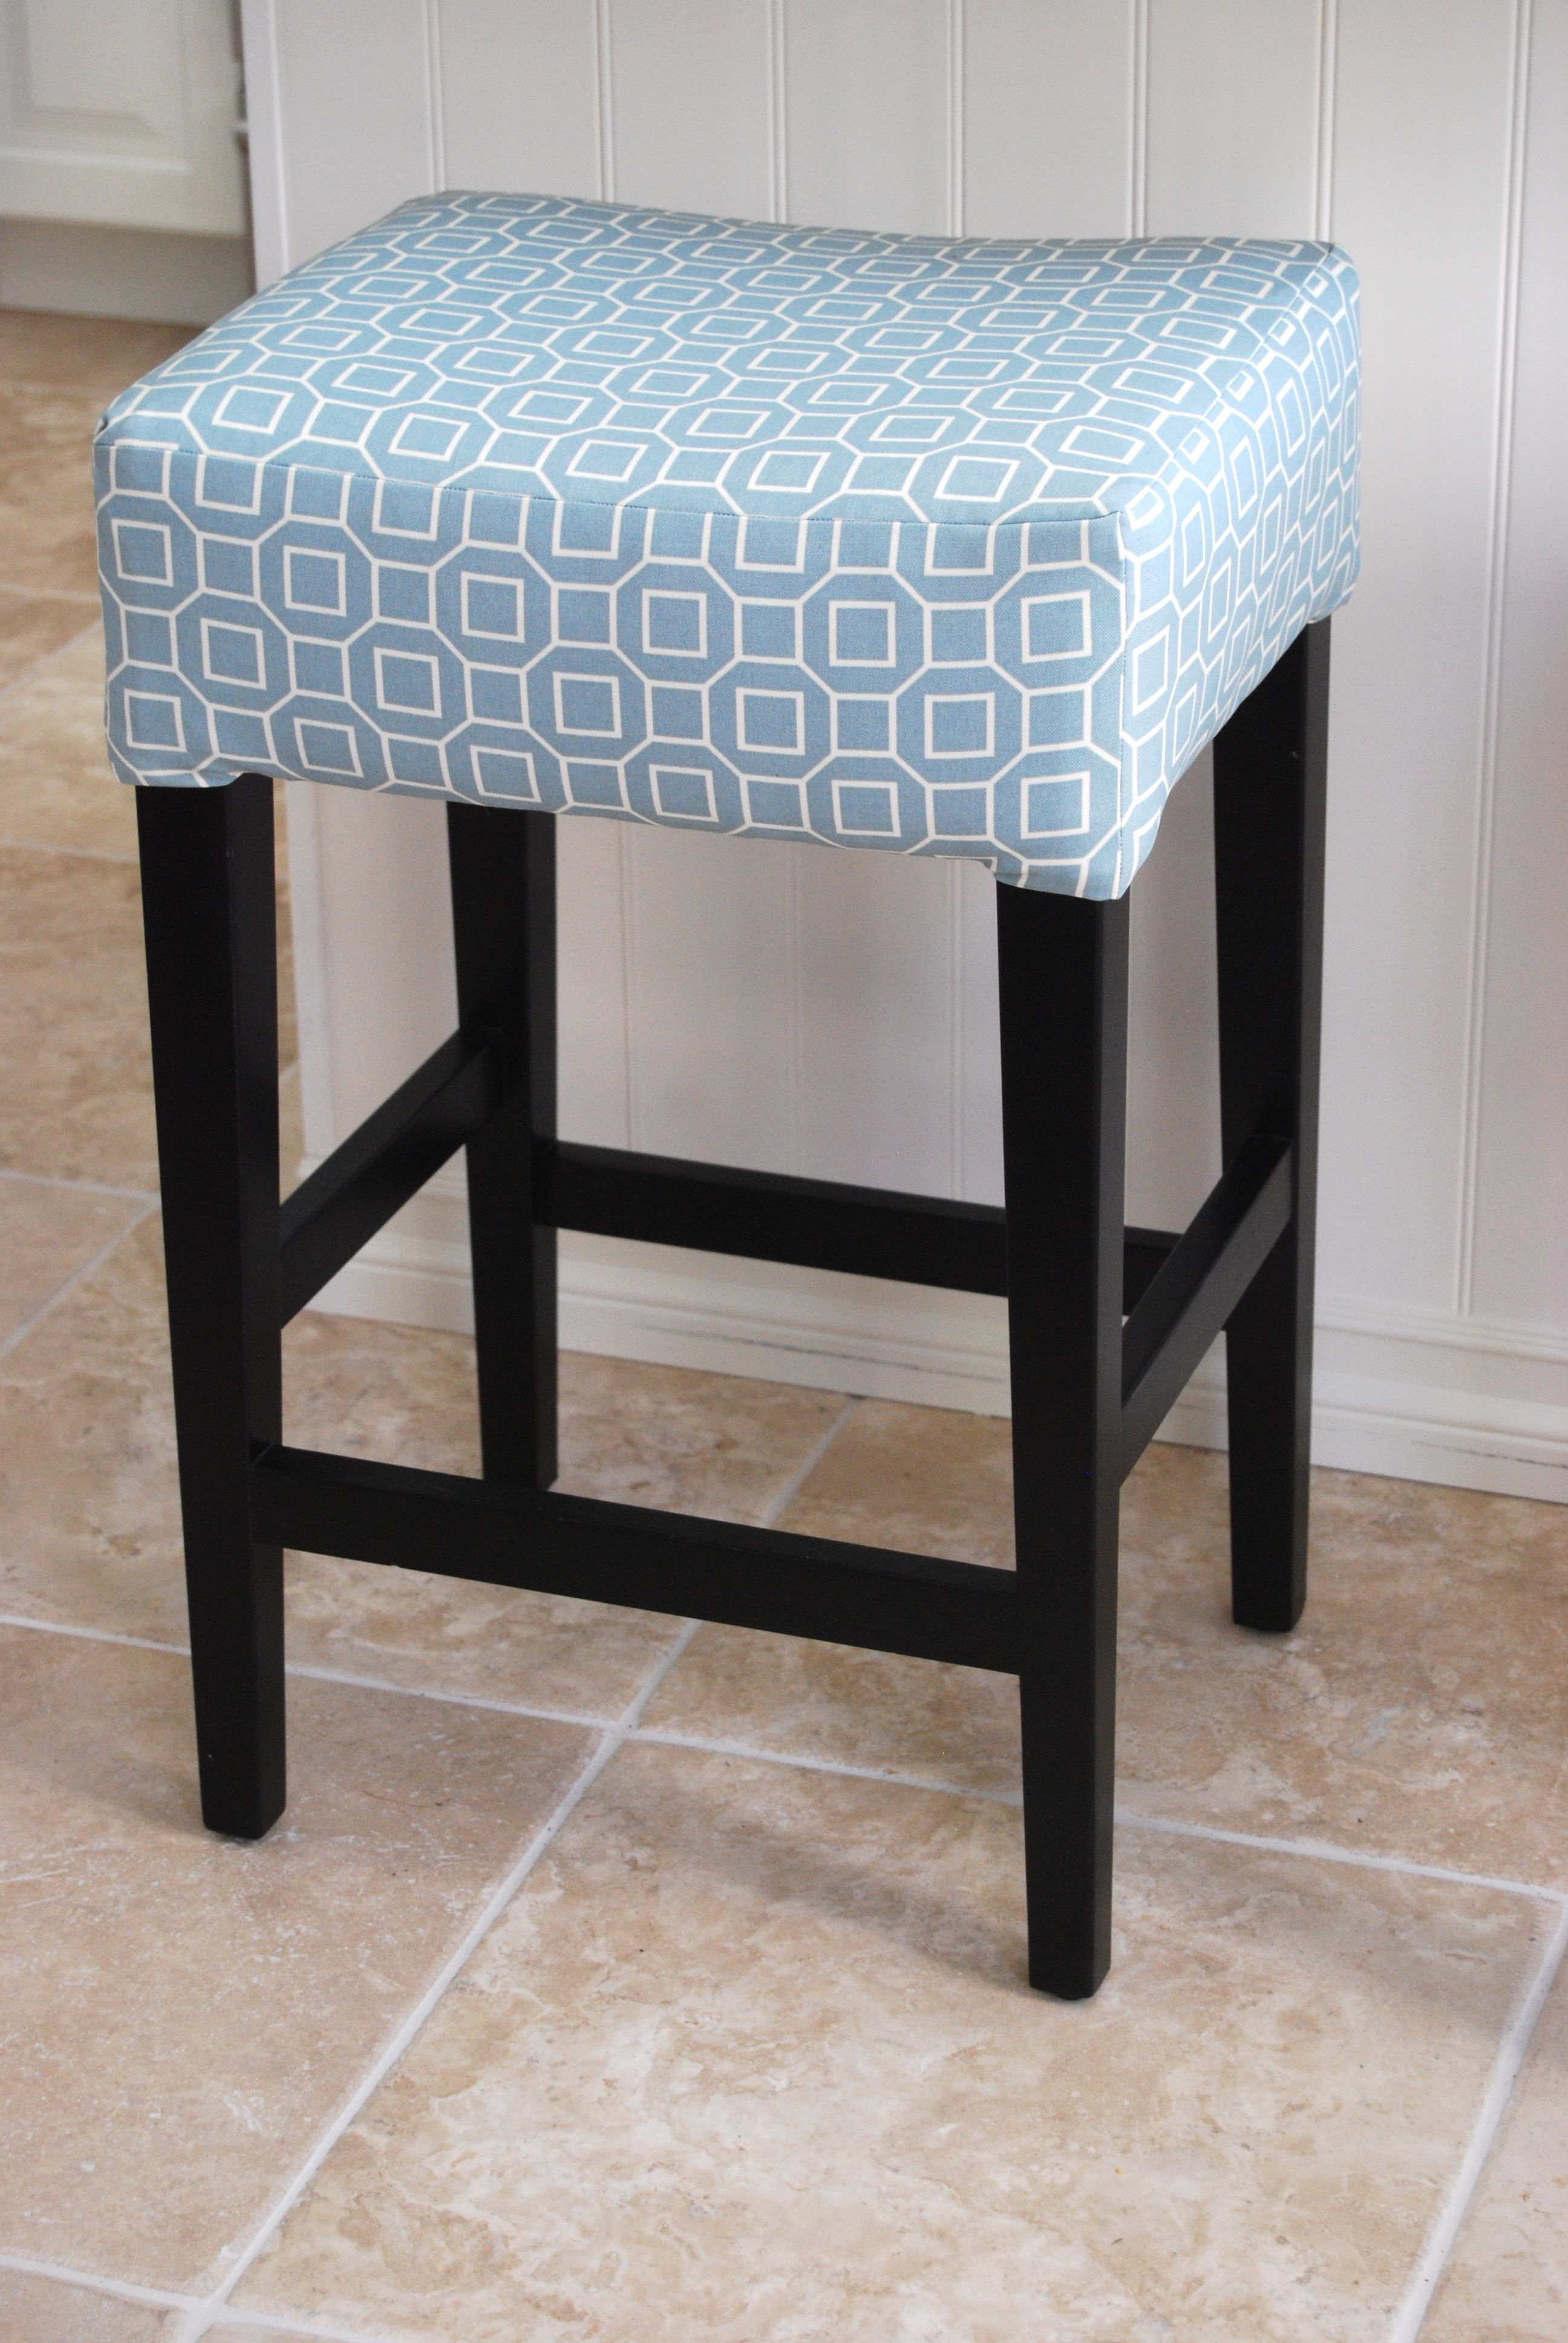 Not So Easy Bar Stool Covers - Cre8tive Designs Inc.